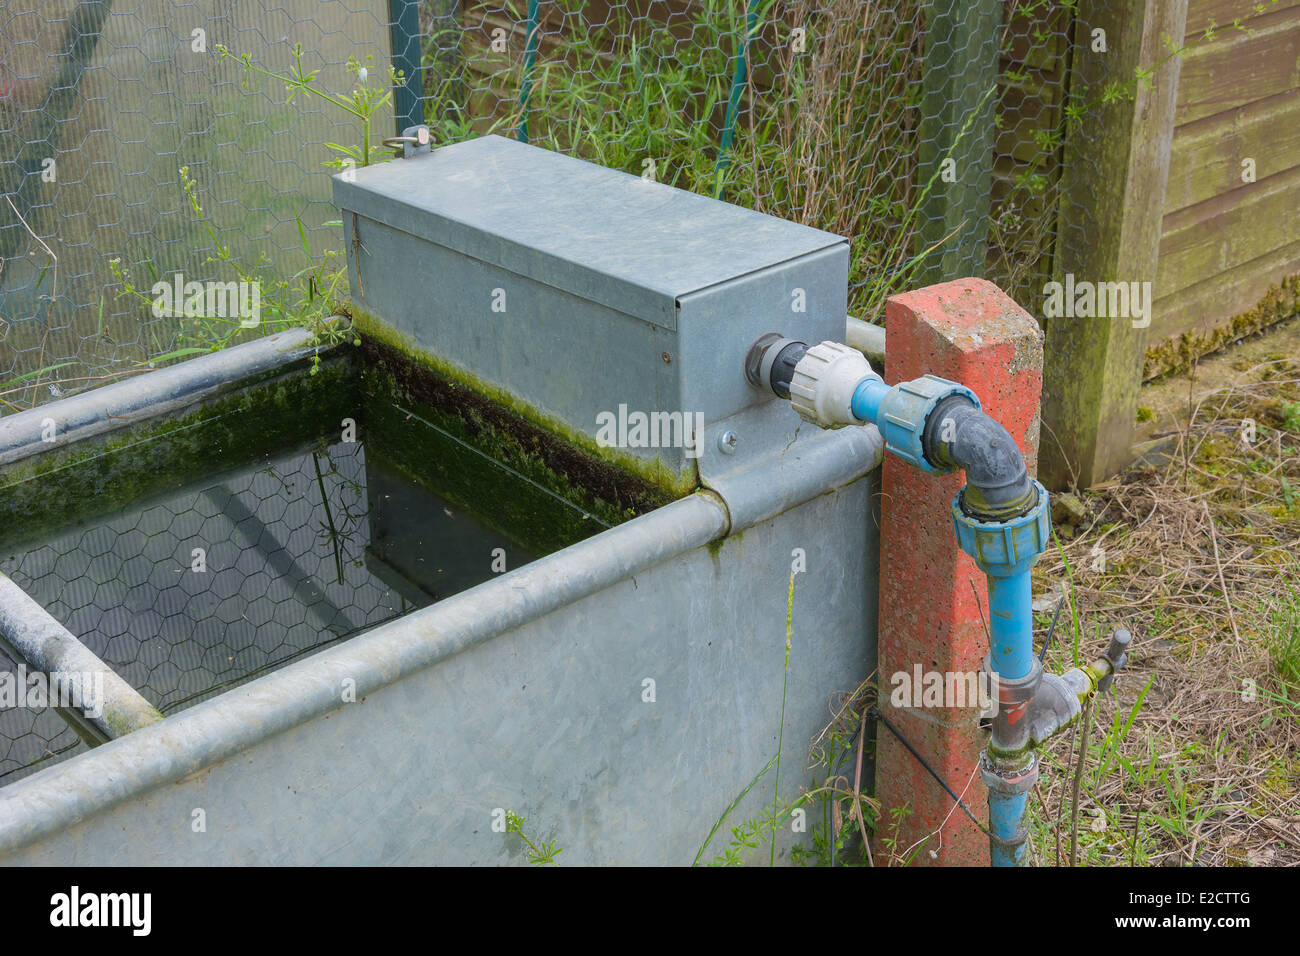 Garden water trough for storing water with automatic cistern for filling - Stock Image